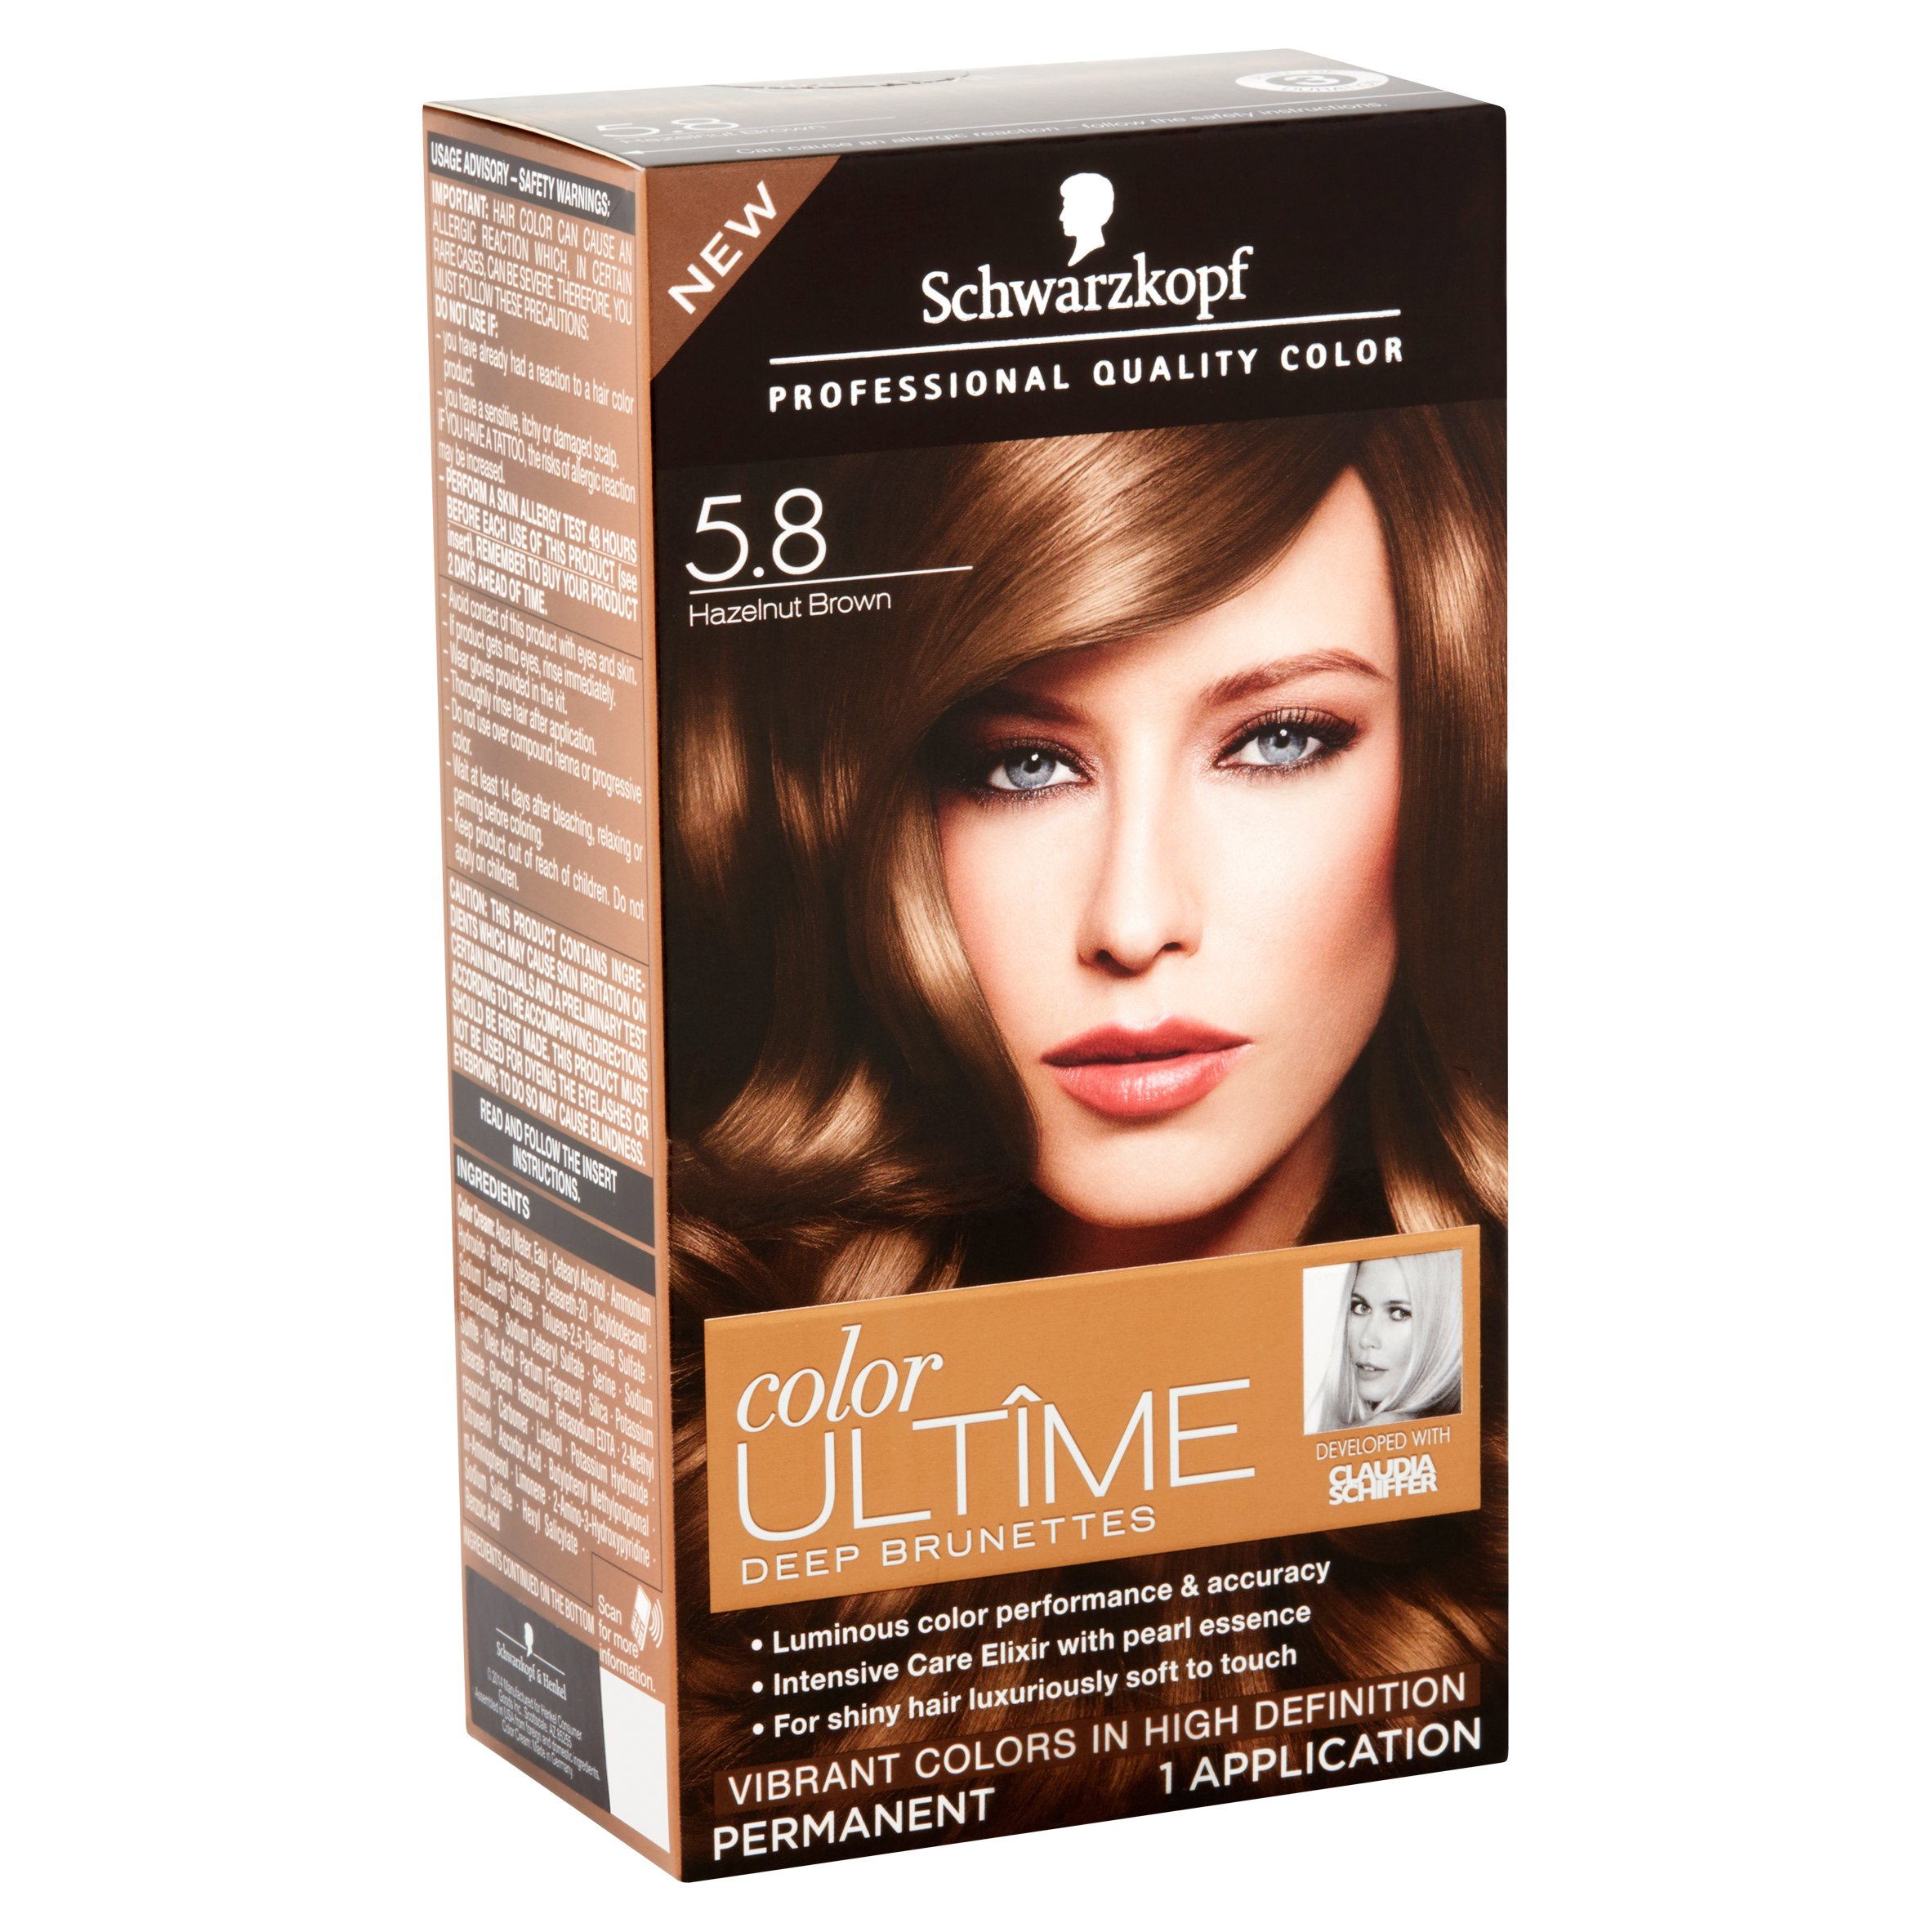 Schwarzkopf Color Ultime Deep Brunettes Hair Coloring Kit Walmart